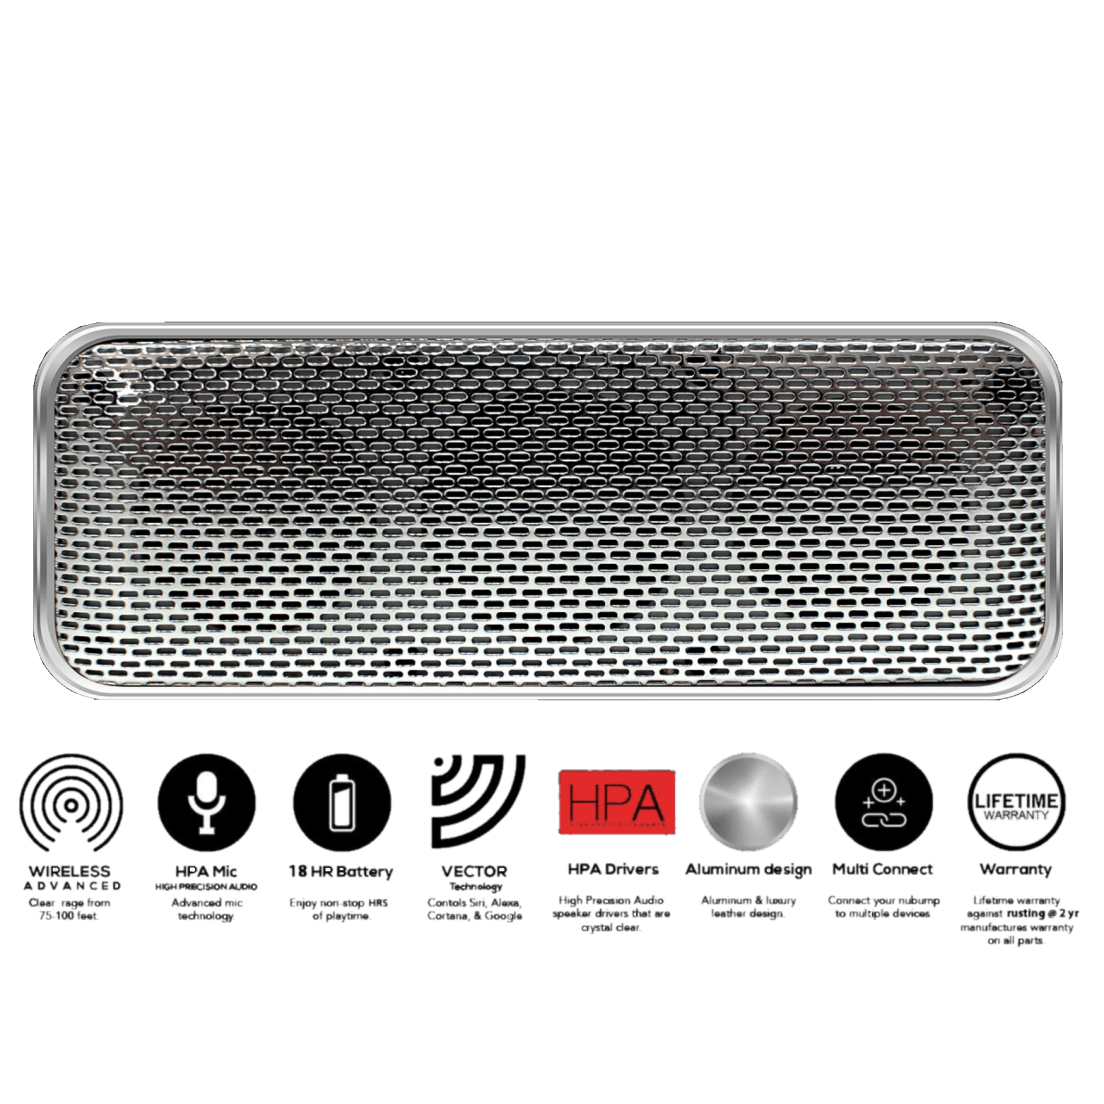 Fanstereo Nubump Bluetooth Speaker with Vector Voice Command Technology 65f4499a9d910